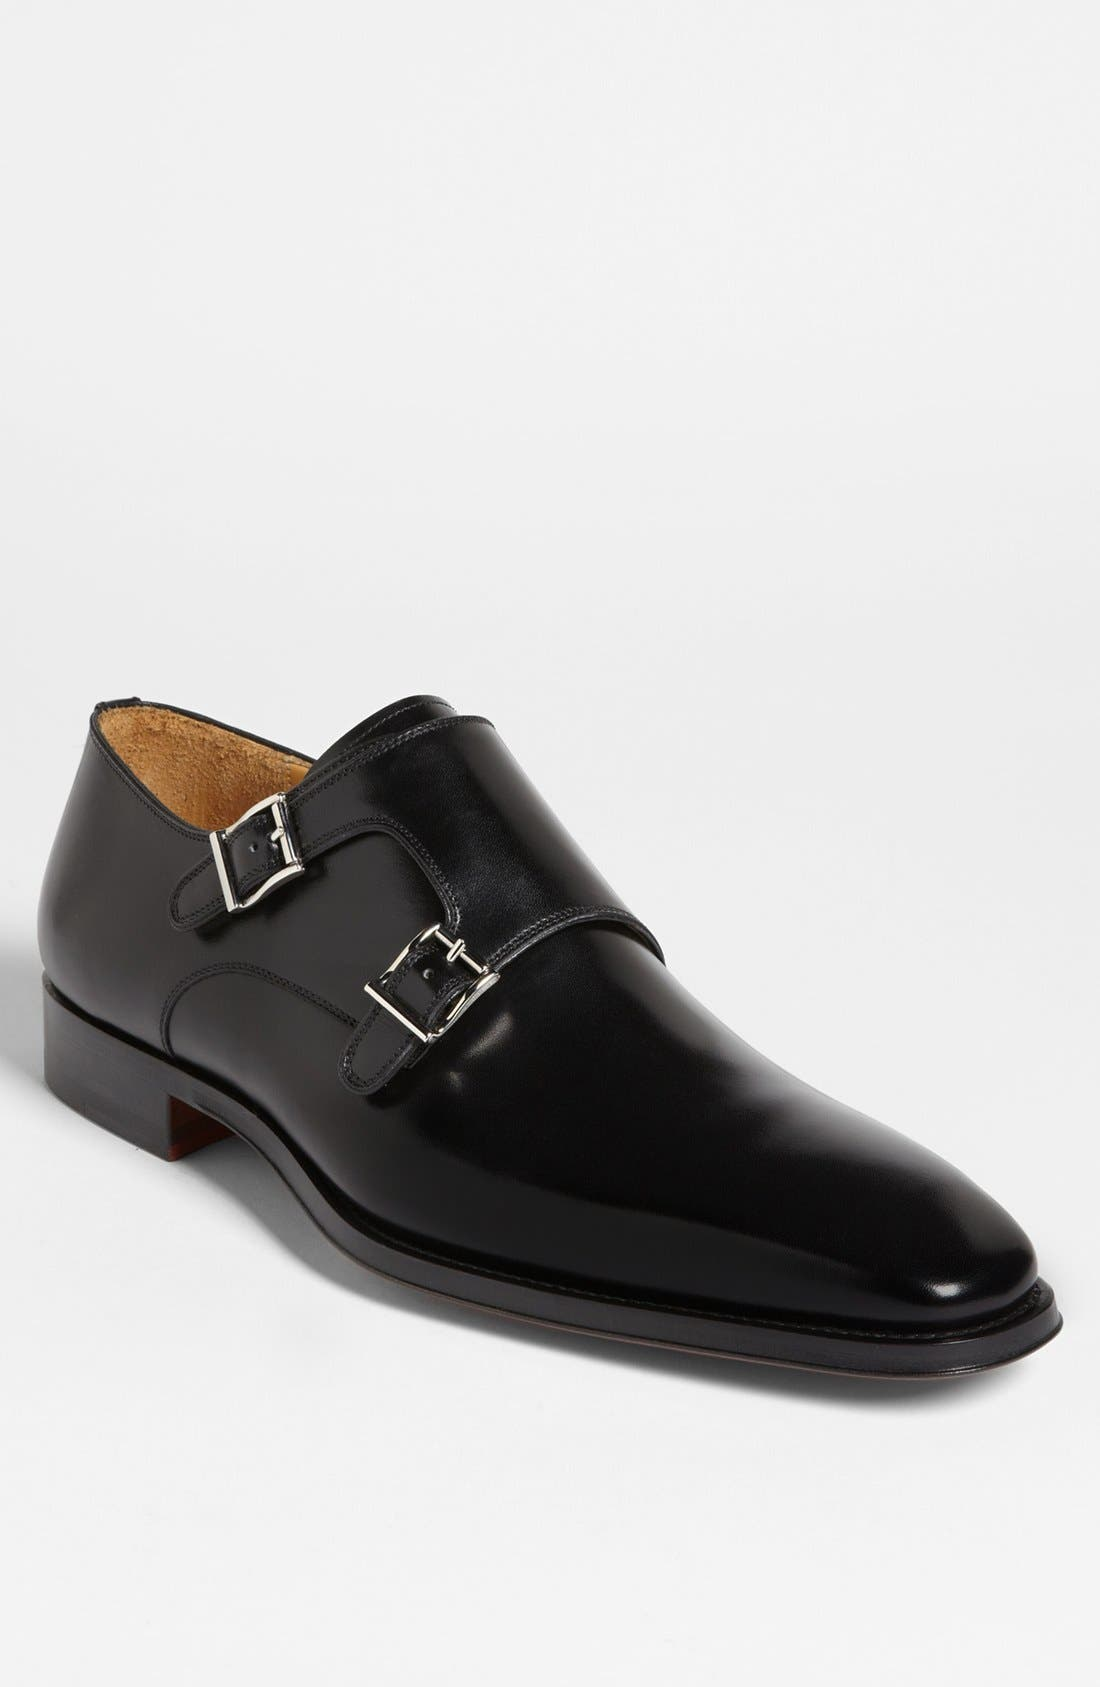 Main Image - Magnanni 'Miro' Double Monk Strap Shoe (Men)